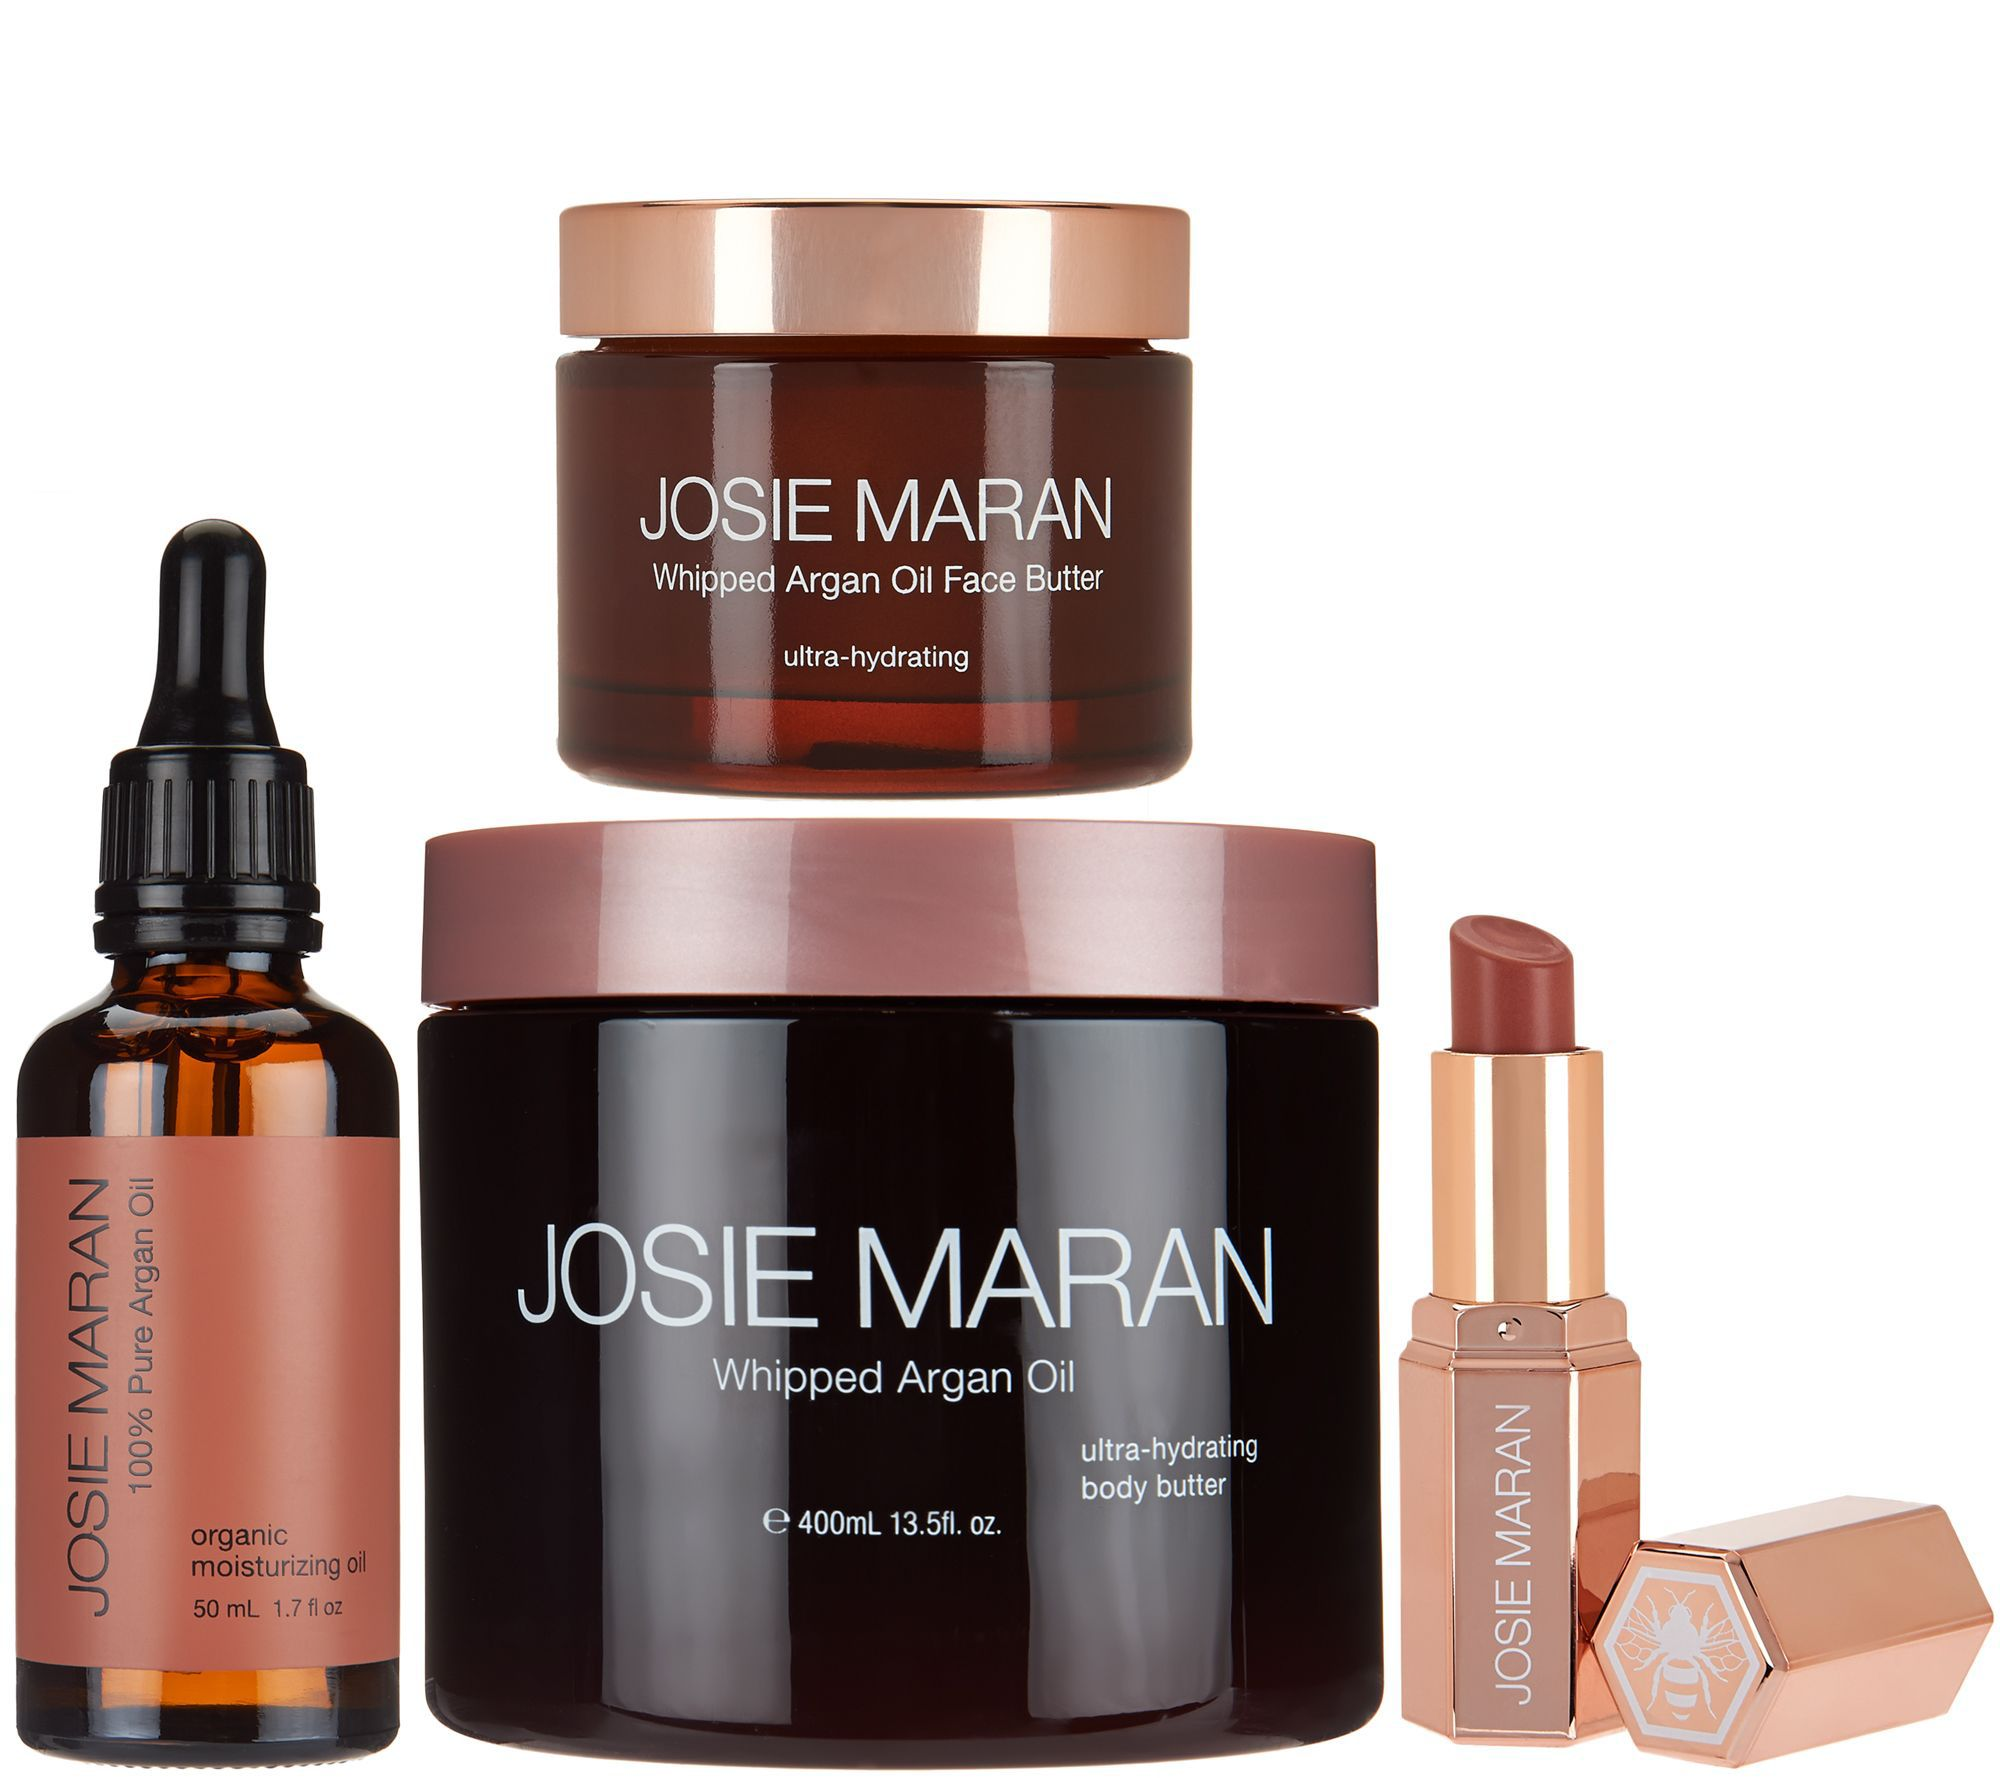 Josie Maran Whipped Argan Oil Butterfull Face Amp Body 4Piece Set  Page